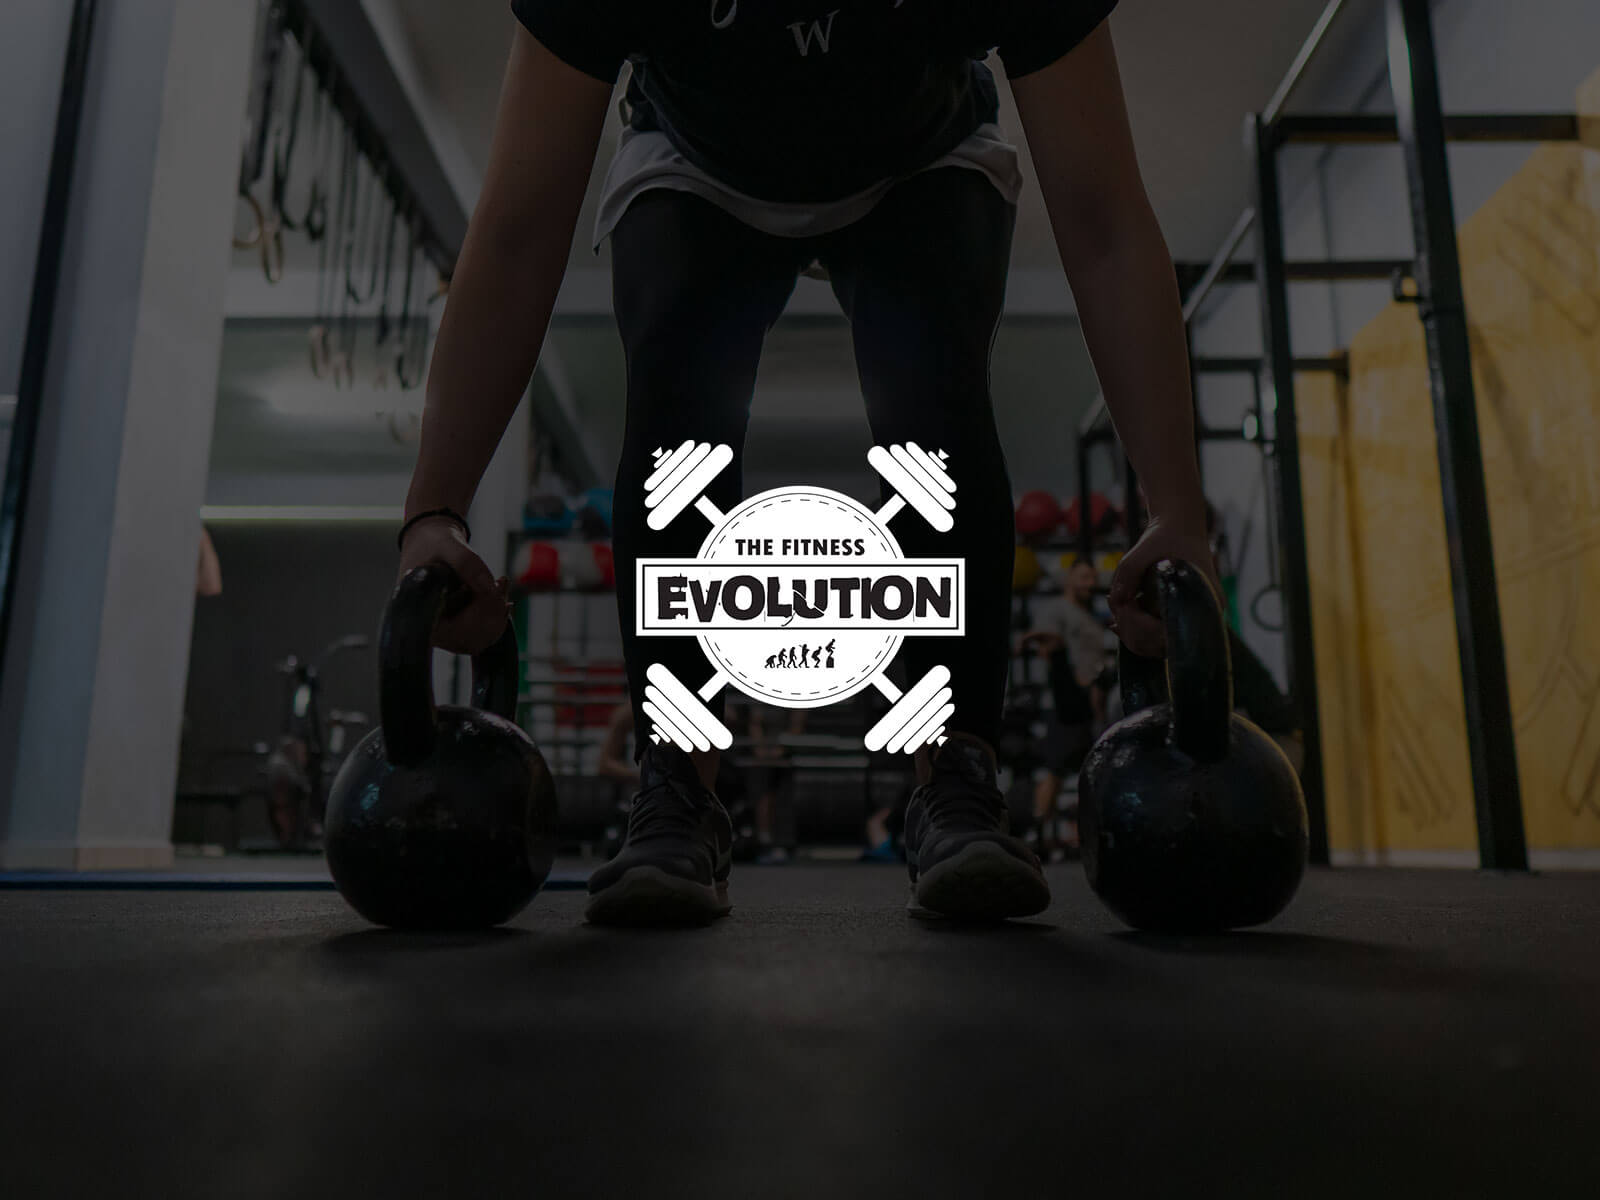 The Fitness Evolution